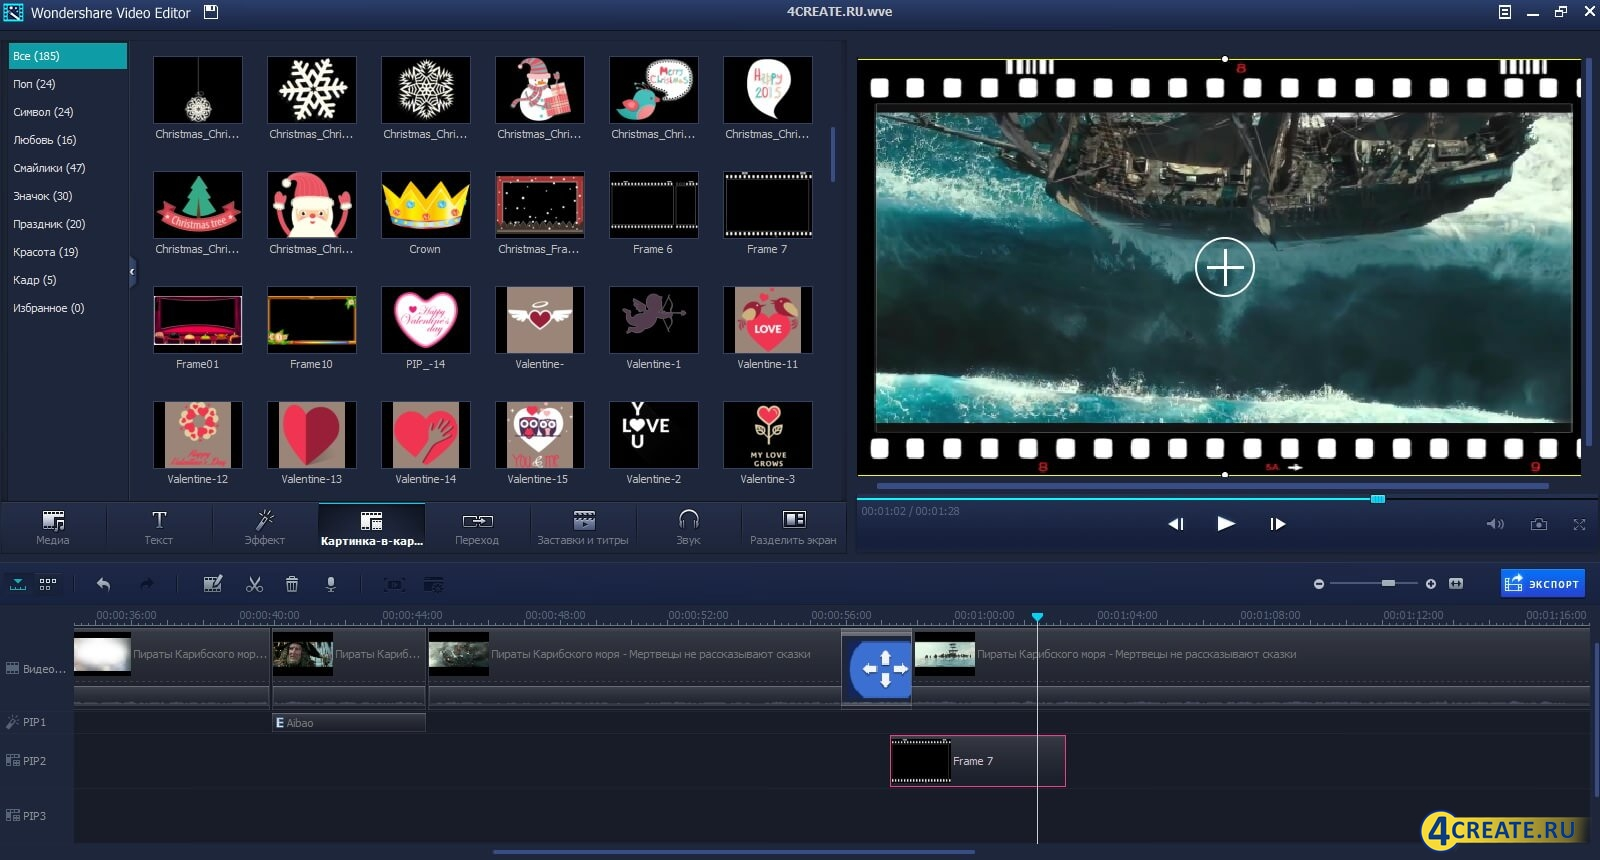 Wondershare Video Editor 5.1 (Скриншот 4)